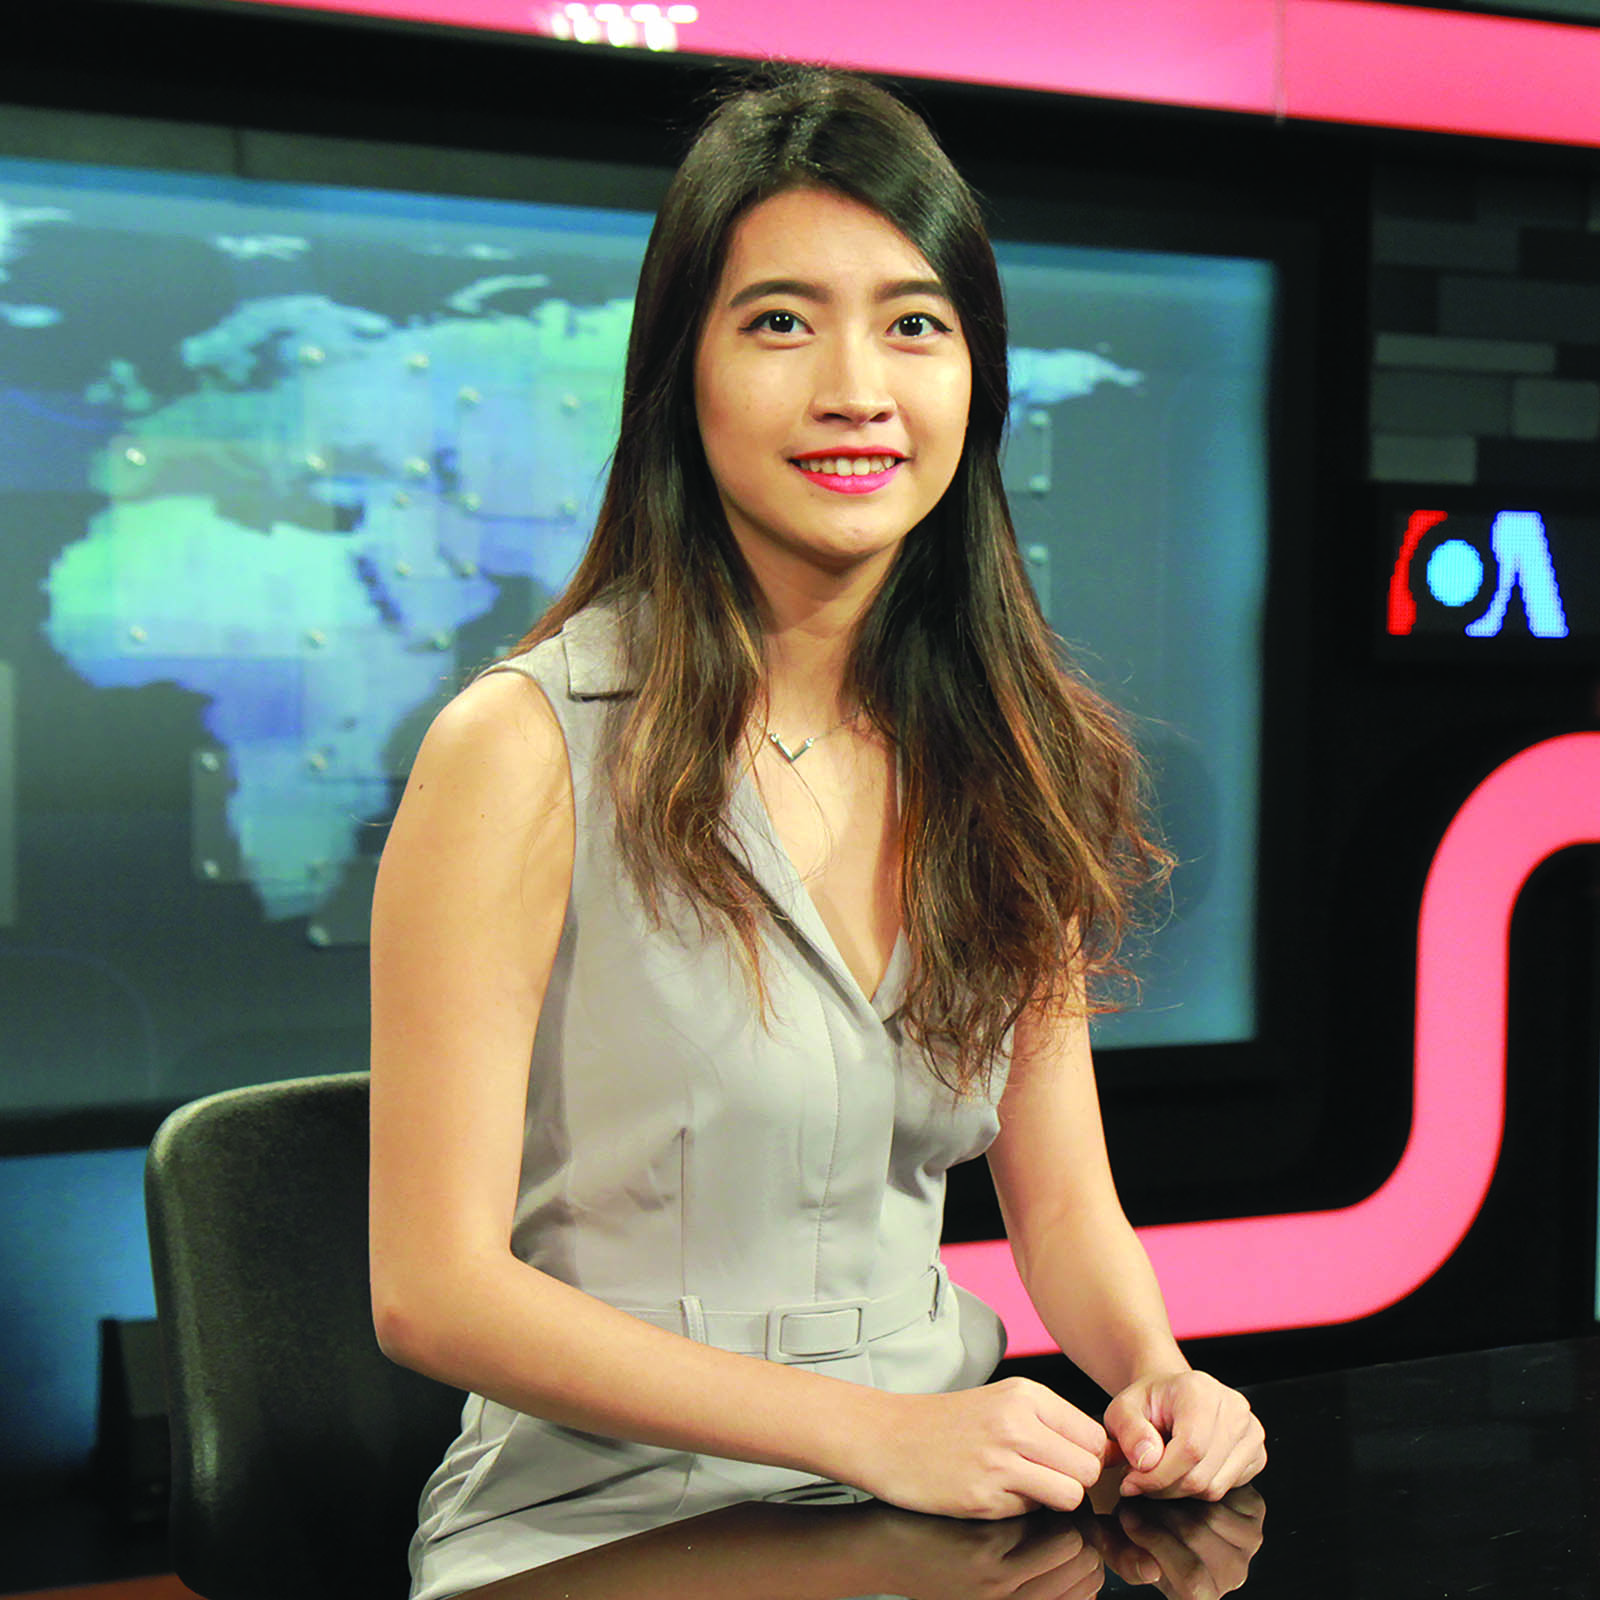 Ei Thant Sin '16 is an international broadcaster for Voice of America Burmese